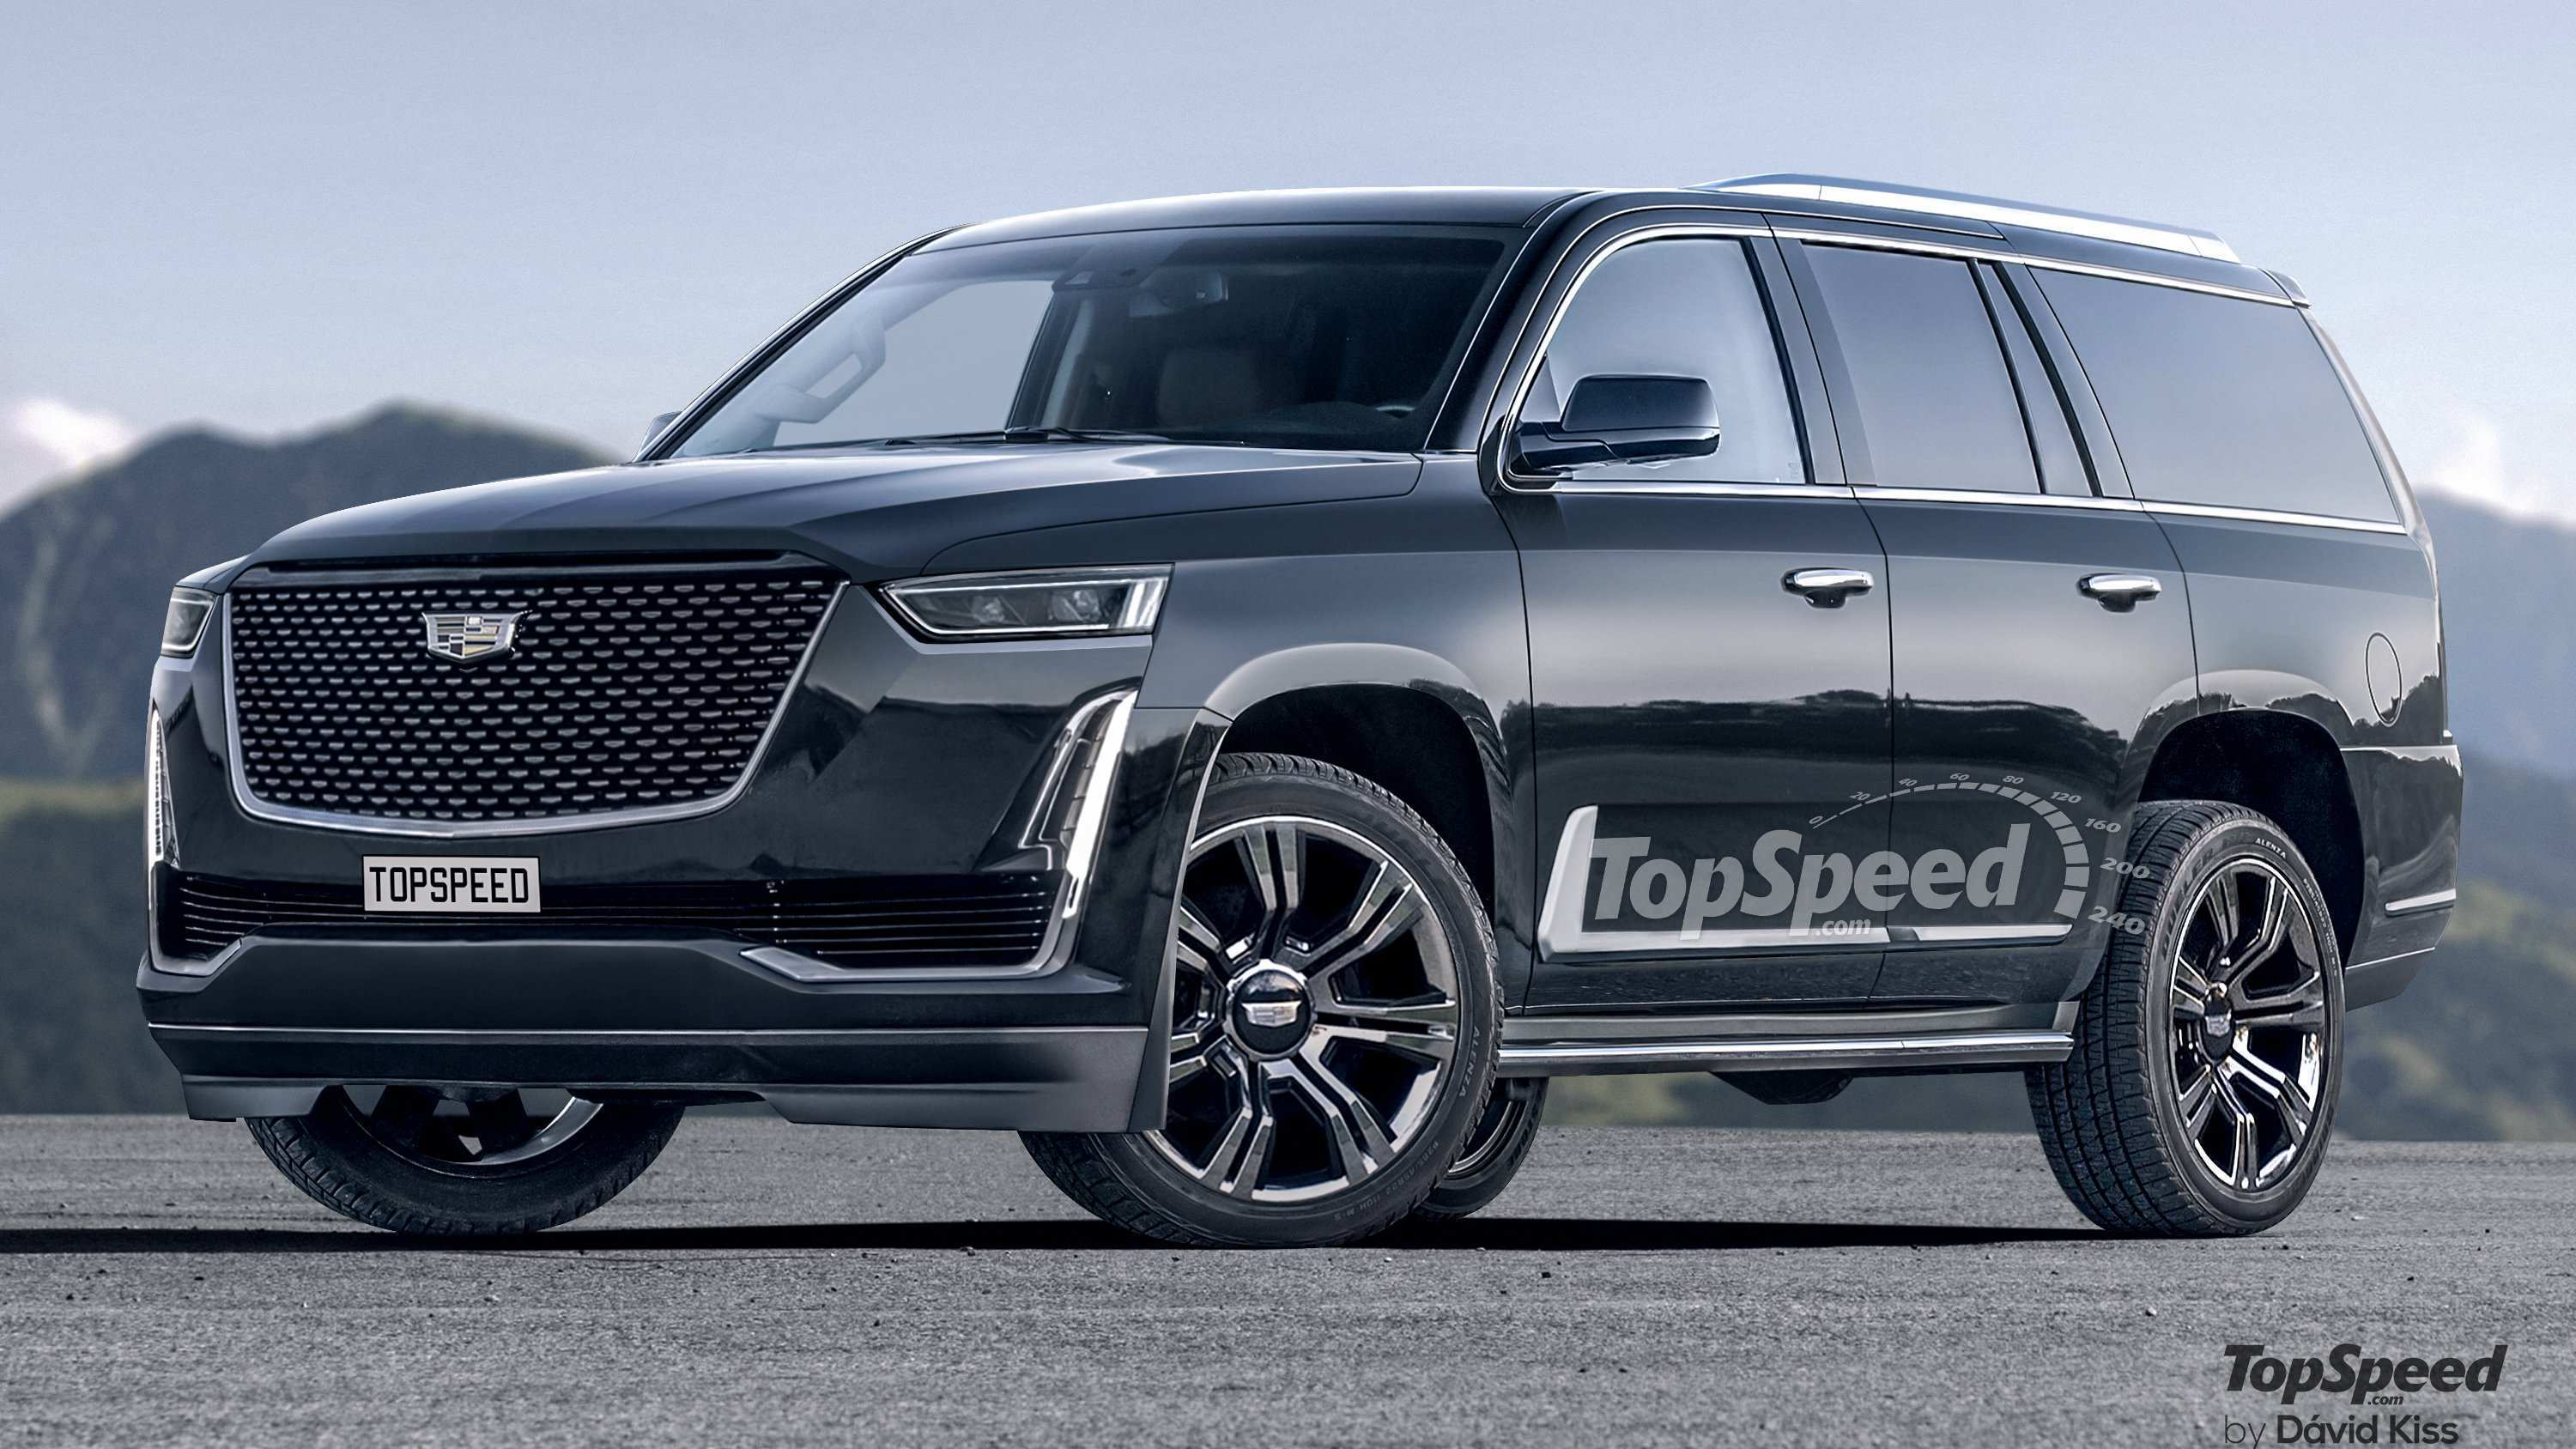 43 Concept of 2020 Cadillac Escalade Vsport Performance with 2020 Cadillac Escalade Vsport